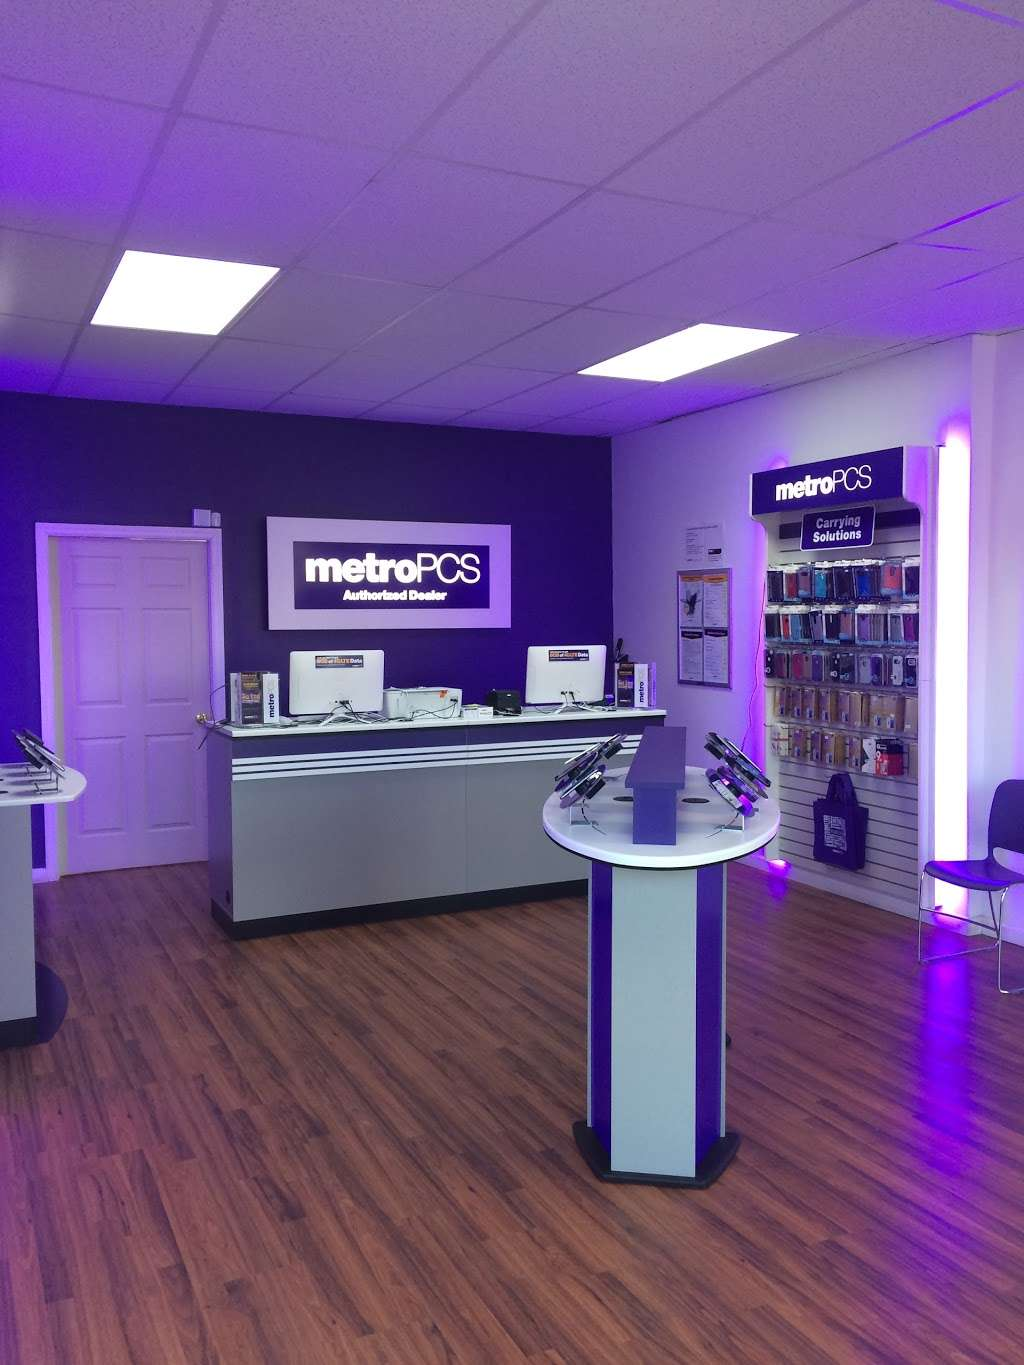 Metro by T-Mobile - electronics store  | Photo 1 of 4 | Address: 1500 Amsterdam Ave, New York, NY 10031, USA | Phone: (646) 869-0435